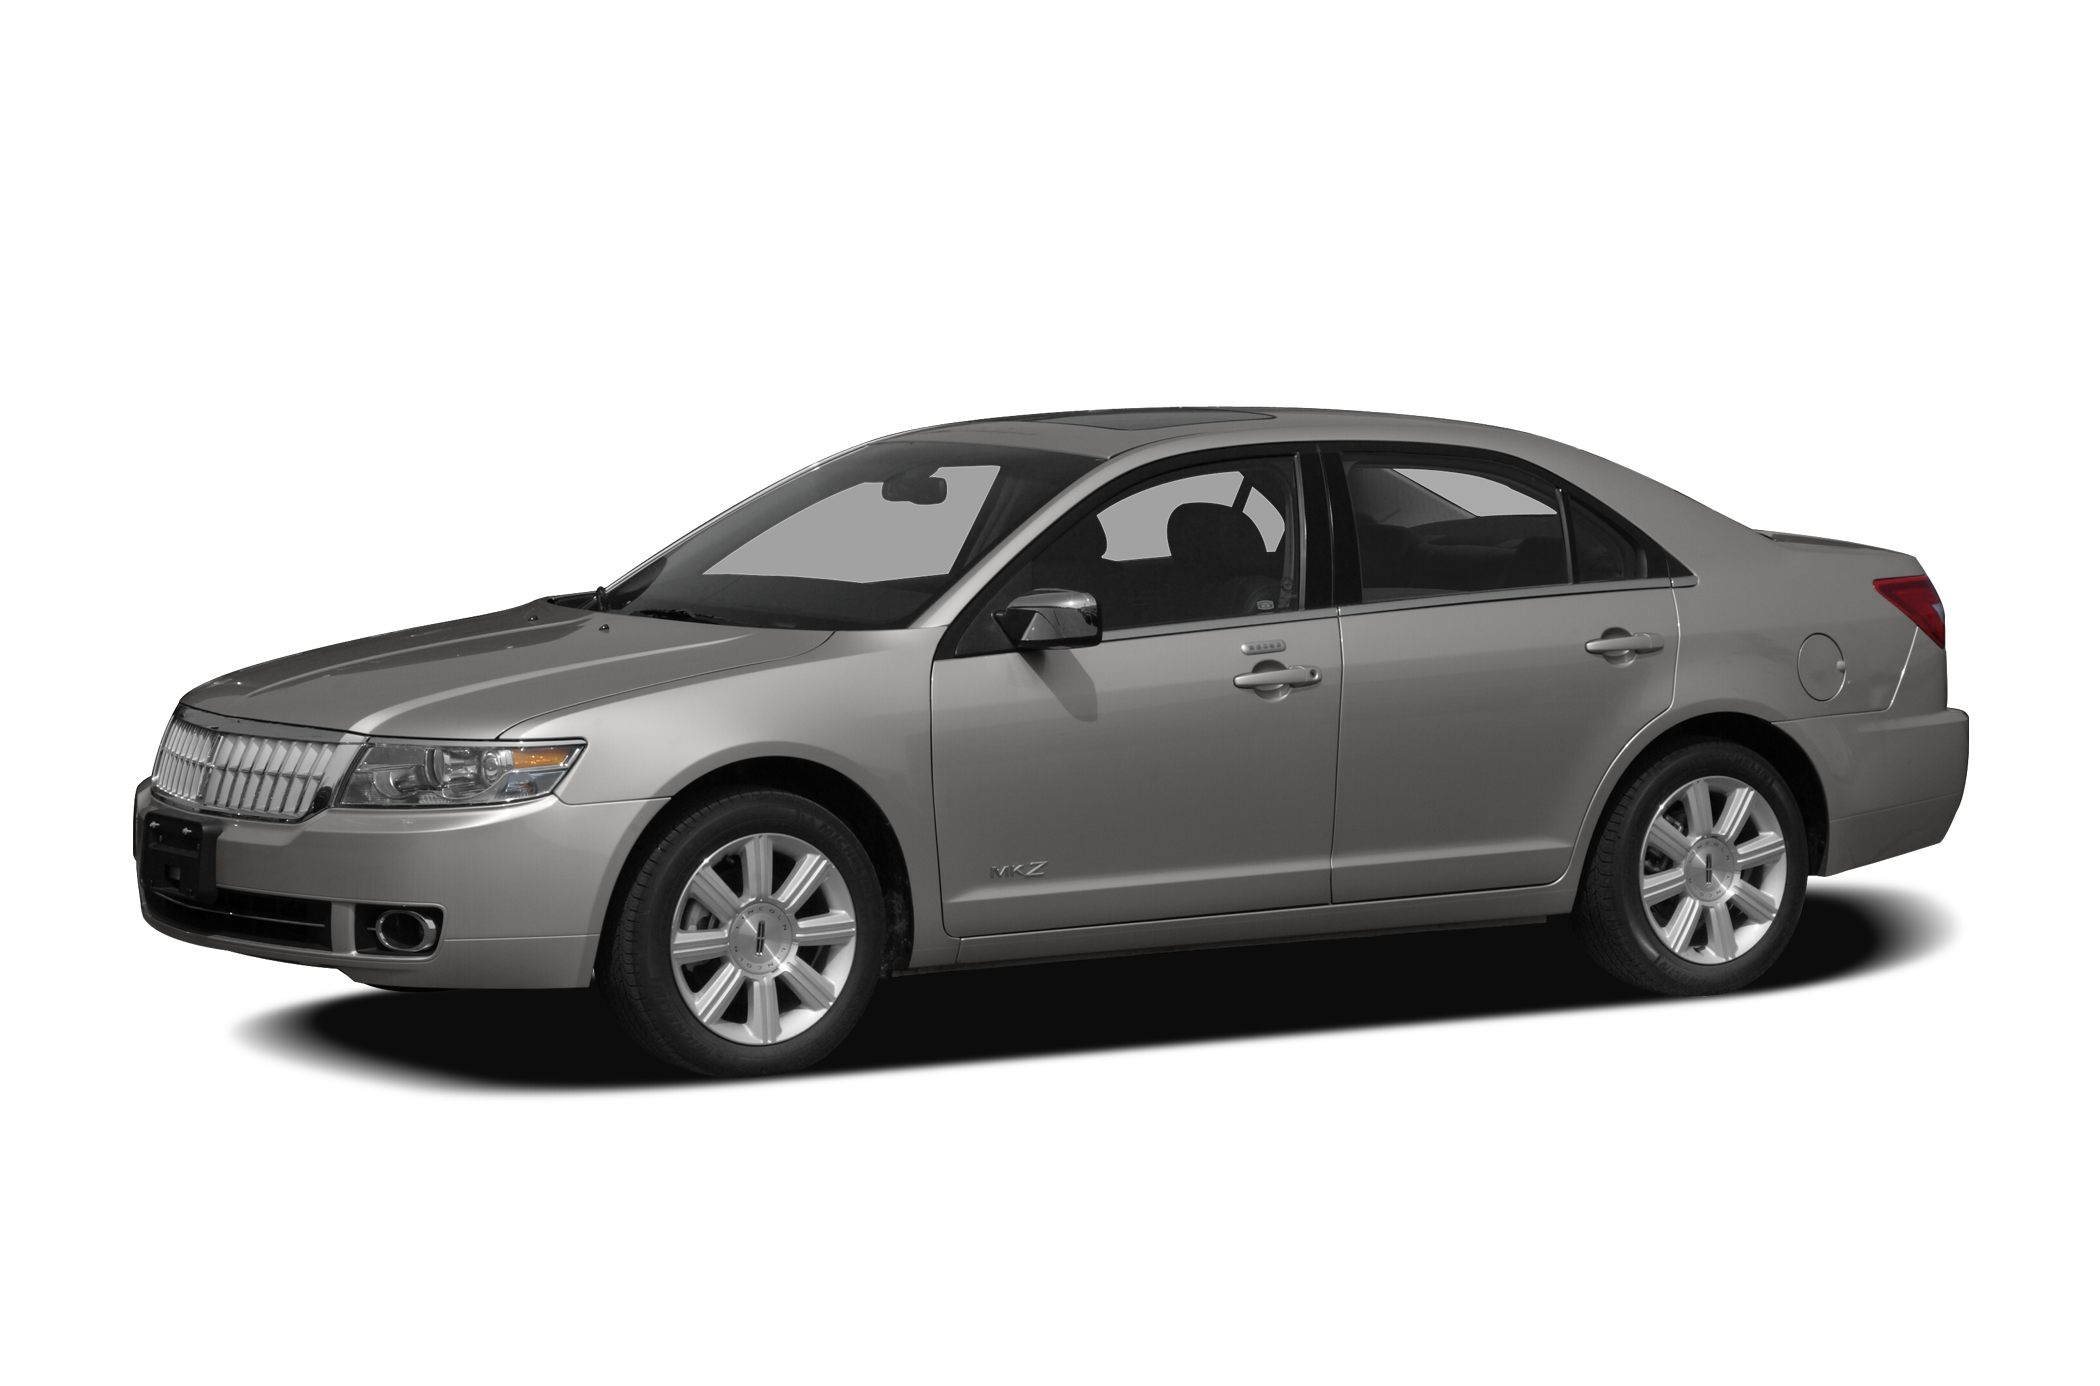 2007 Lincoln MKZ Sedan for sale in Paducah for $7,995 with 136,519 miles